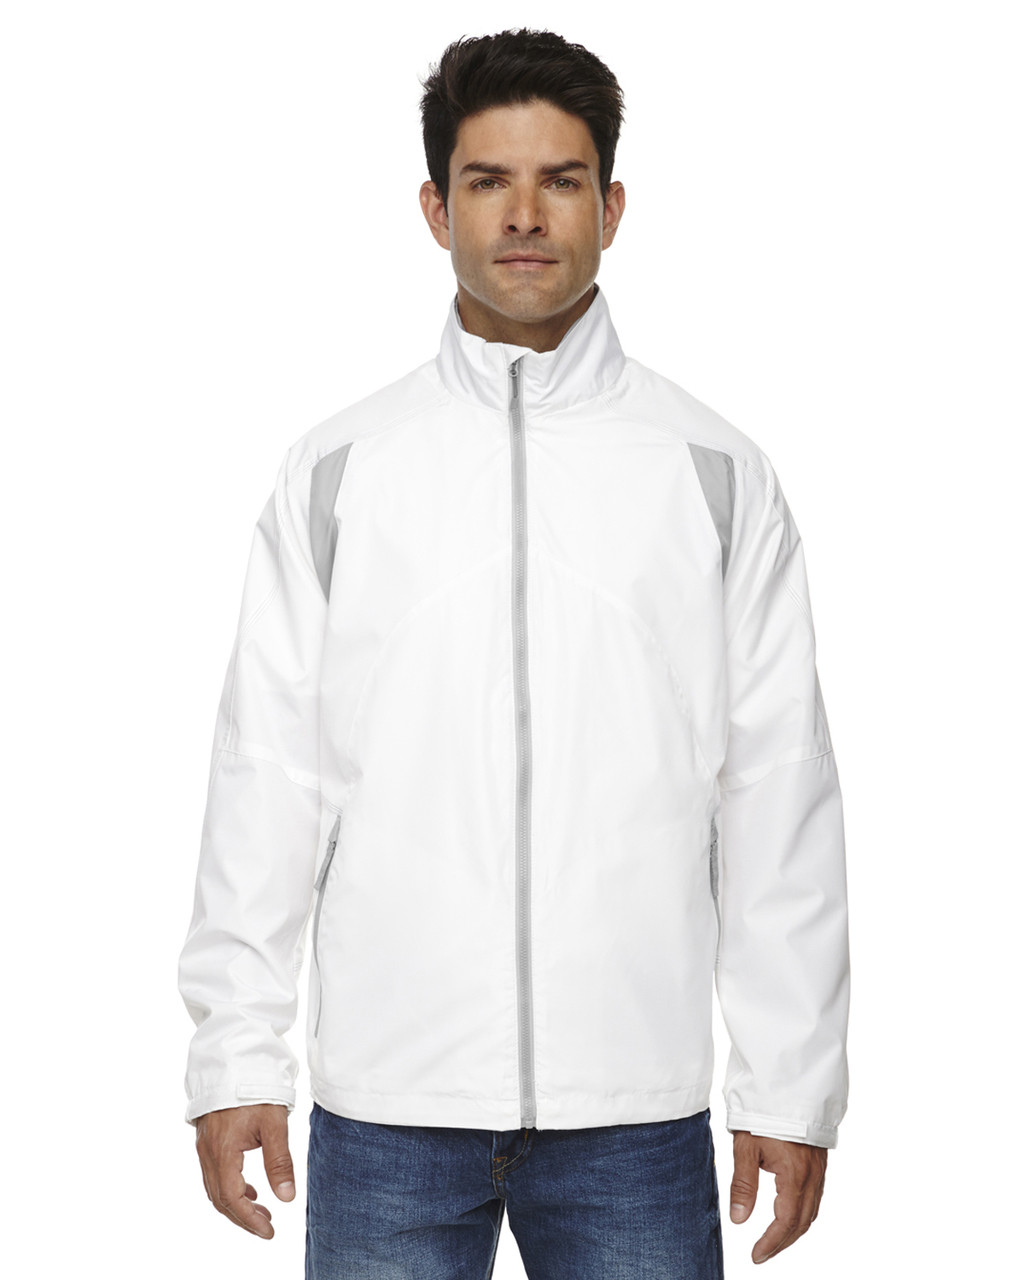 White - 88155 North End Men's Lightweight Colour-Block Jacket   Blankclothing.ca